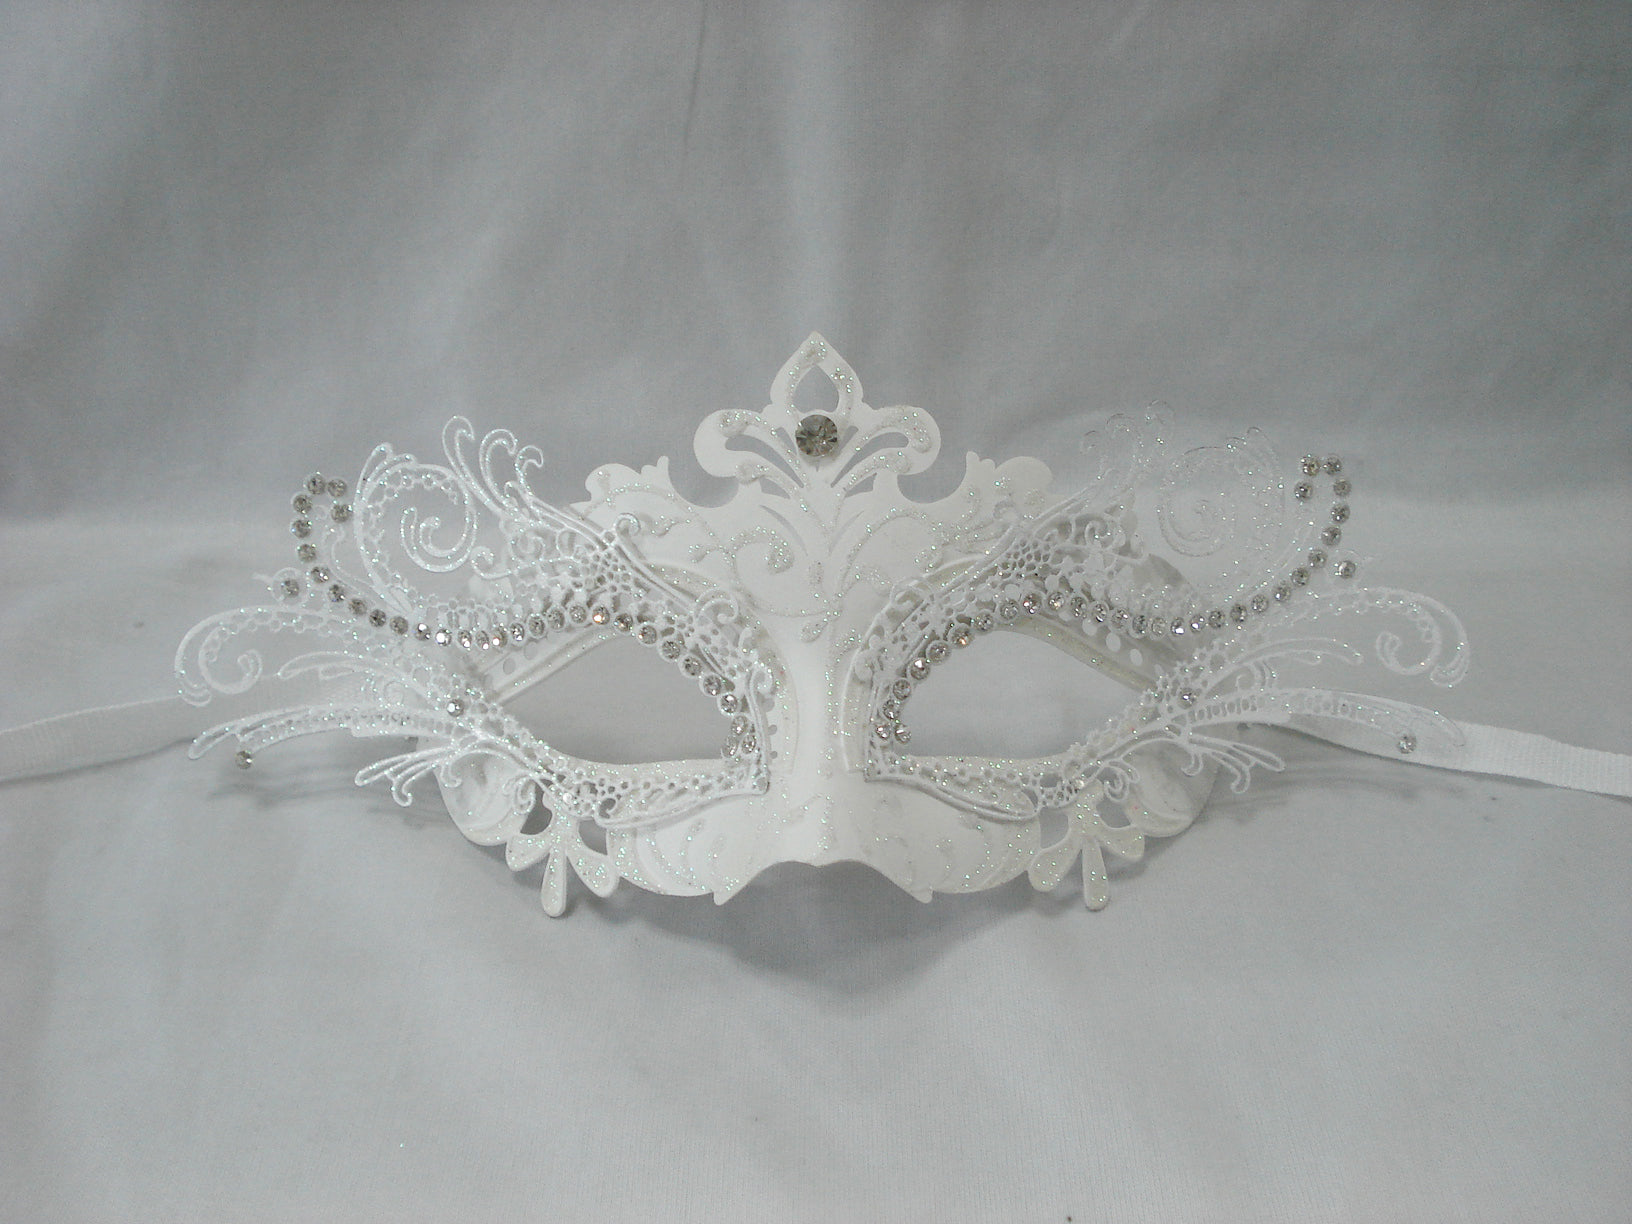 MK115 - White Deco Mask - Min 12 - Tamarr Imports Innovative Giftware Pty Ltd